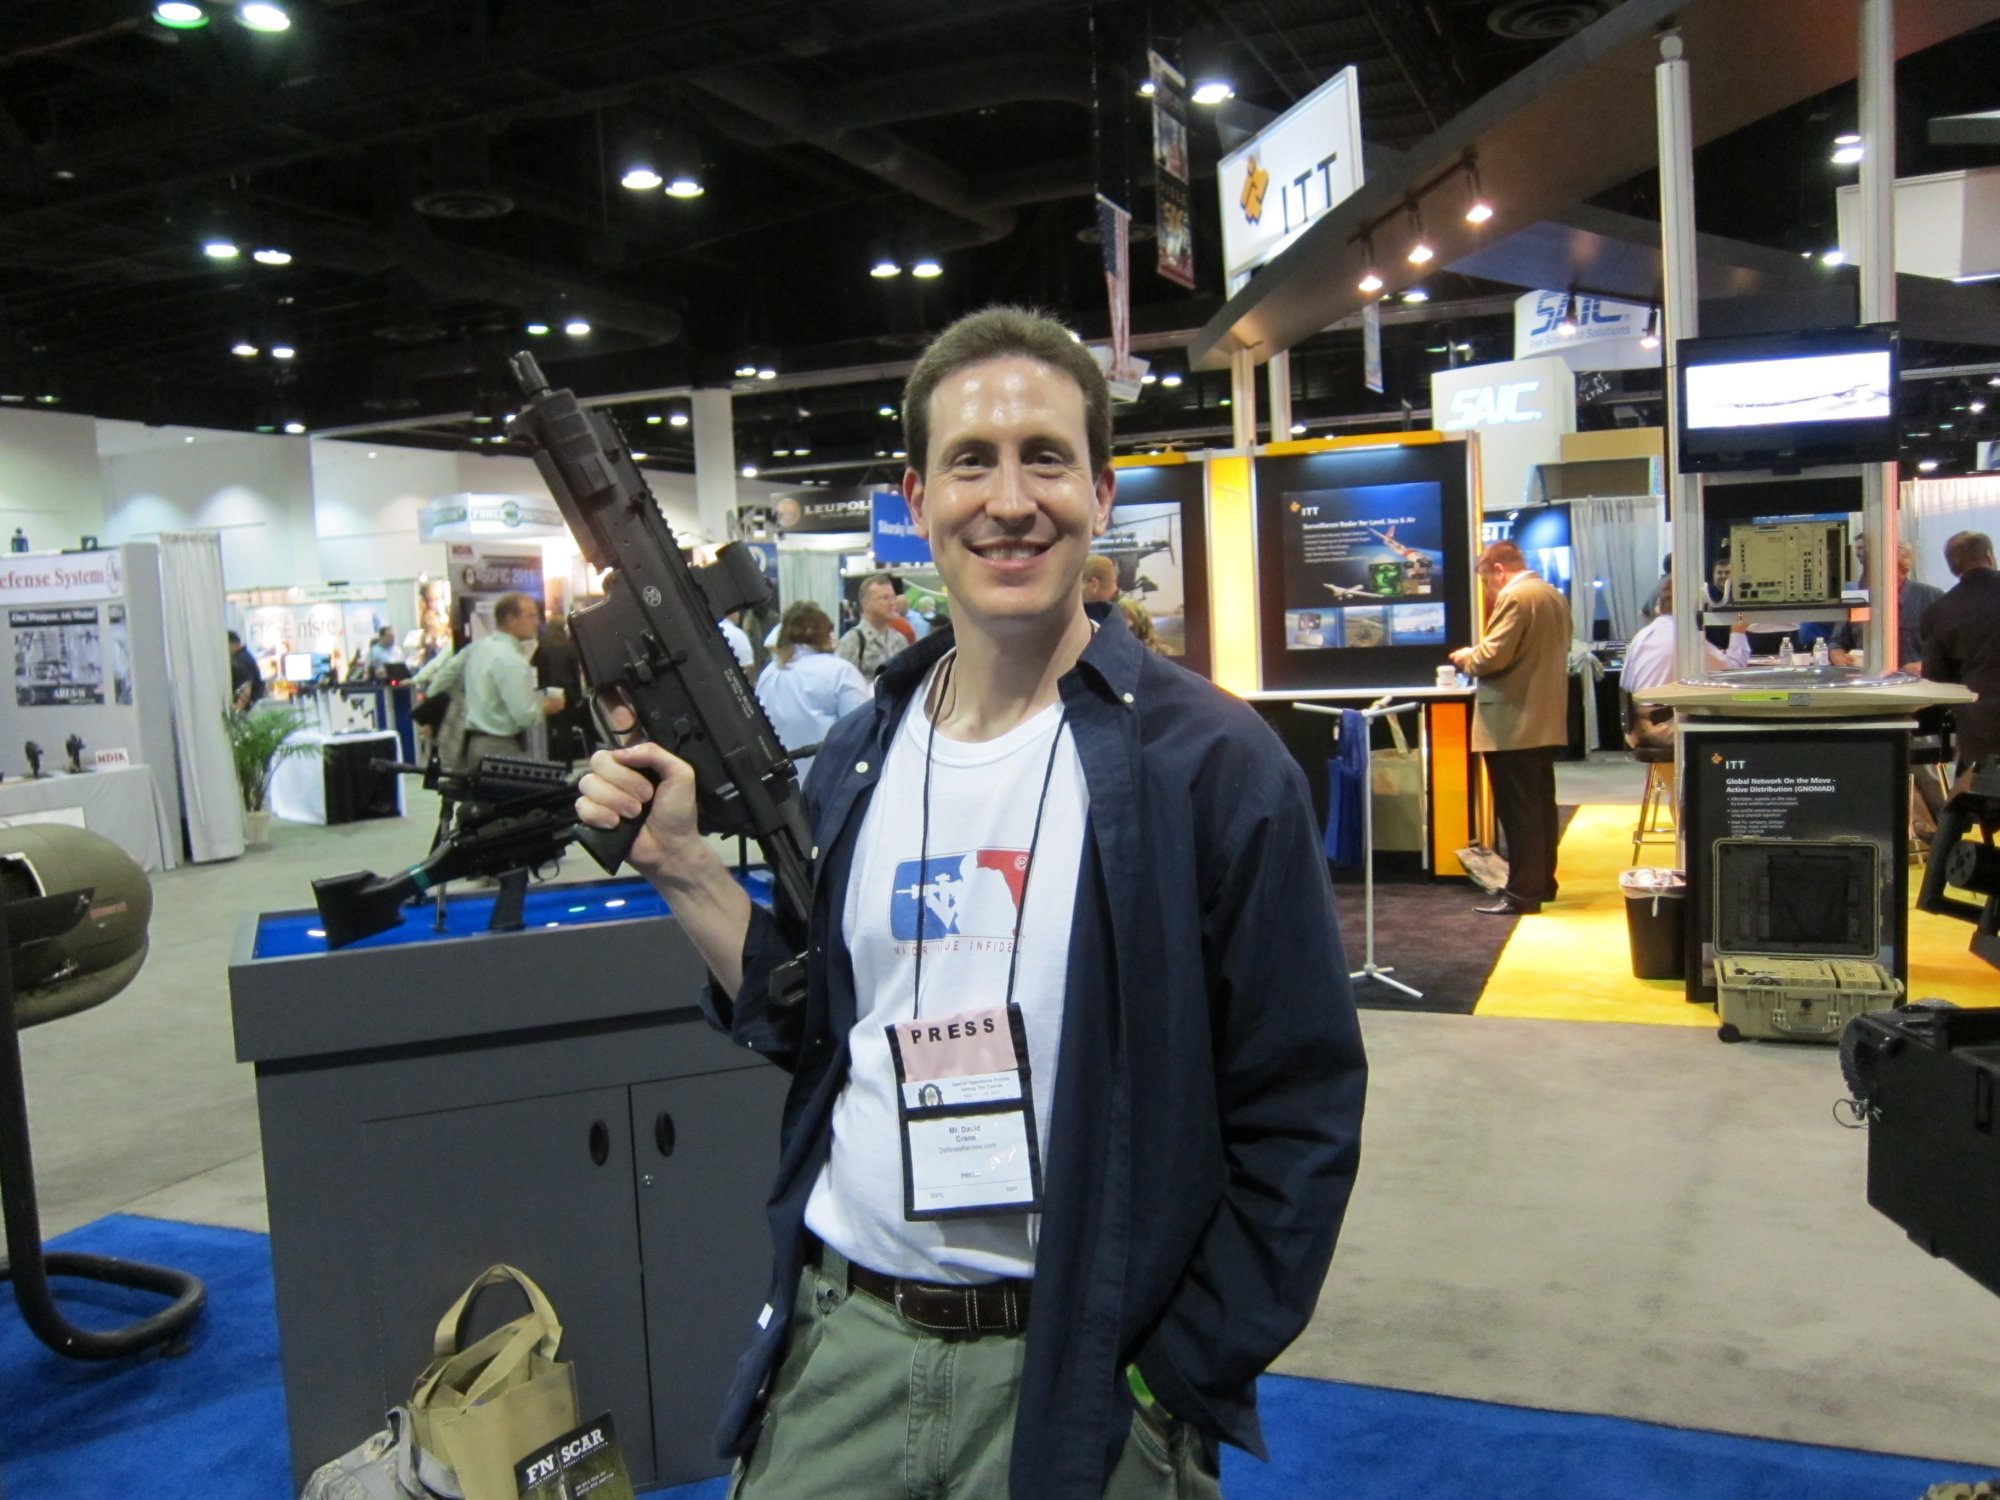 FNH_USA_FN_SCAR_PDW_Compact_Assault_SBR_5.56mm_NATO_David_Crane_SOFIC_2011_DefenseReview_(DR)_3